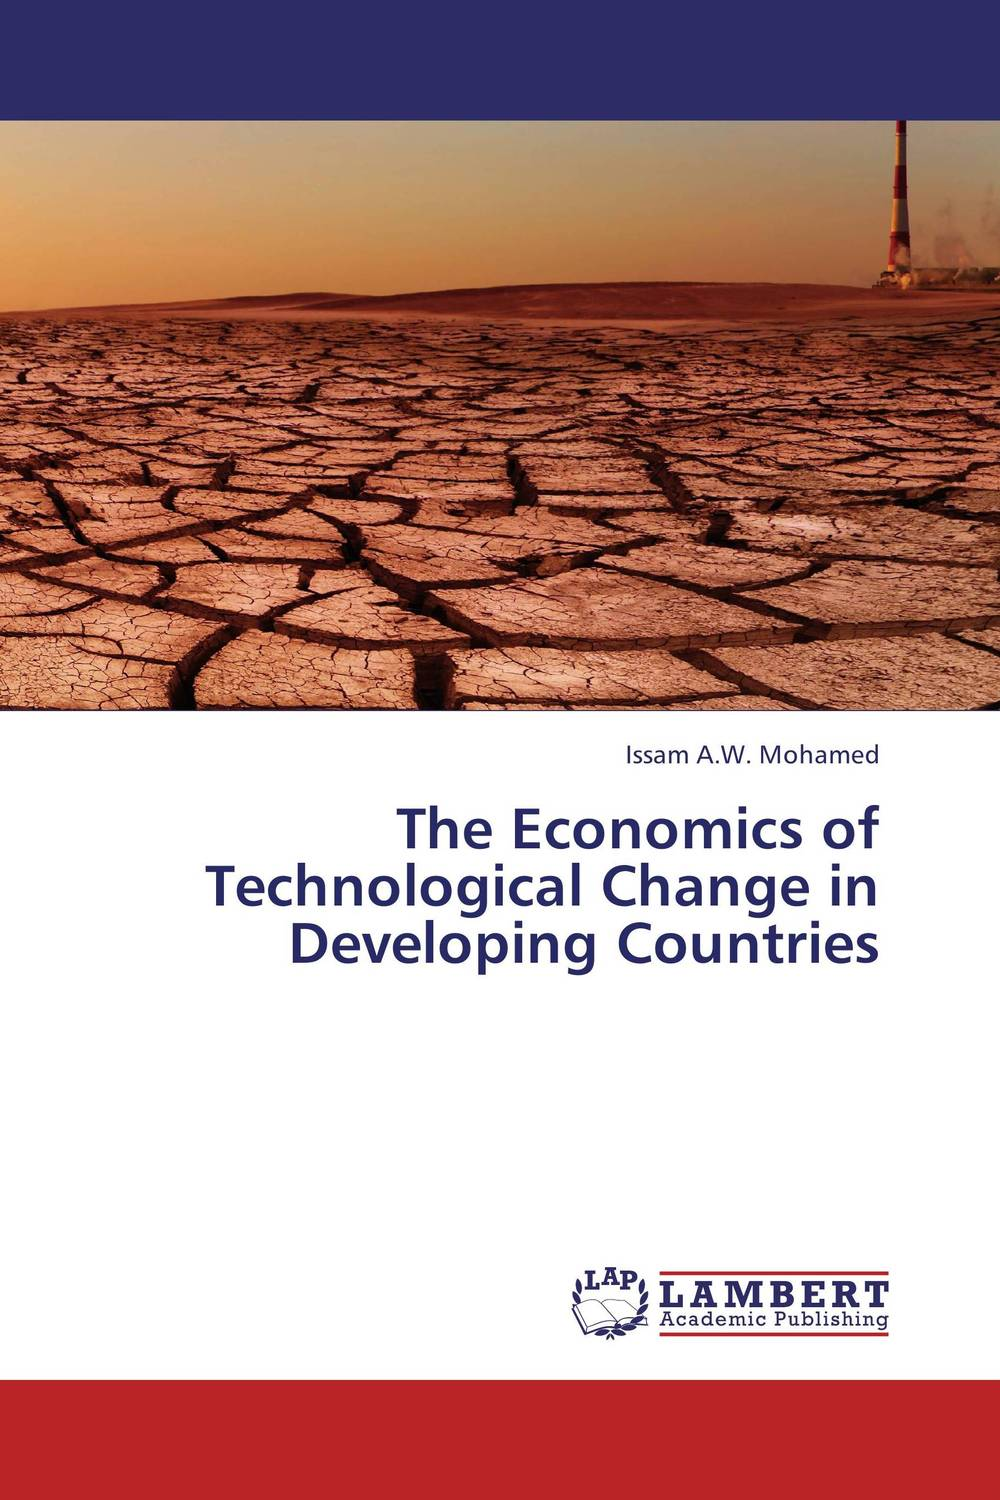 The Economics of Technological Change in Developing Countries